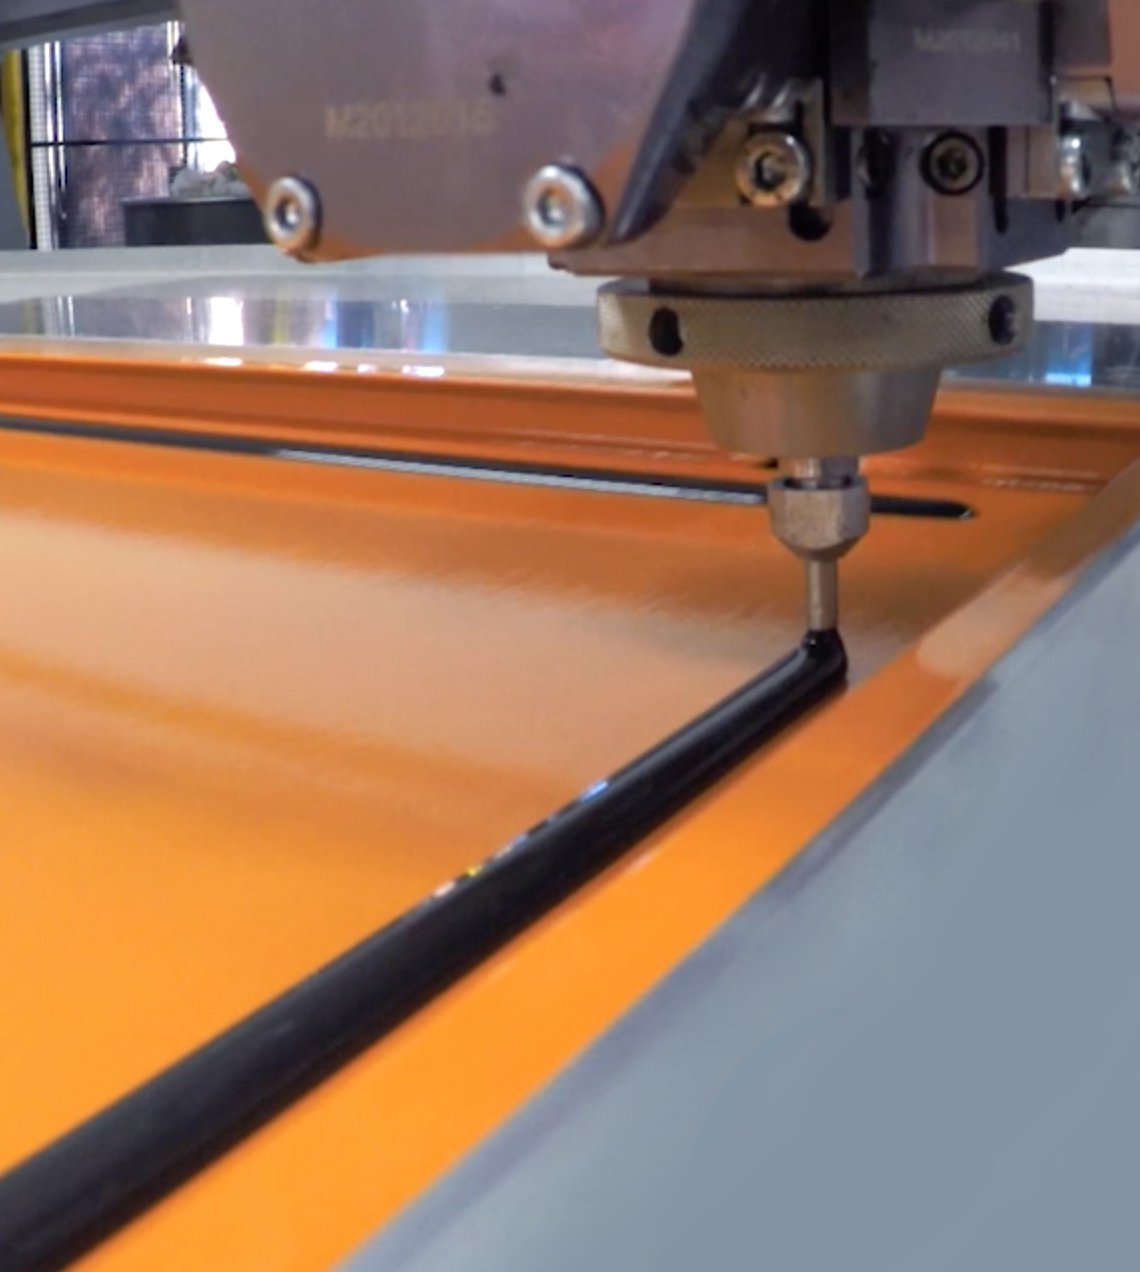 Automated Sheet Metal Form-in-Place Foam Gasket Application Machine at the FORM2000 factory in Melbourne